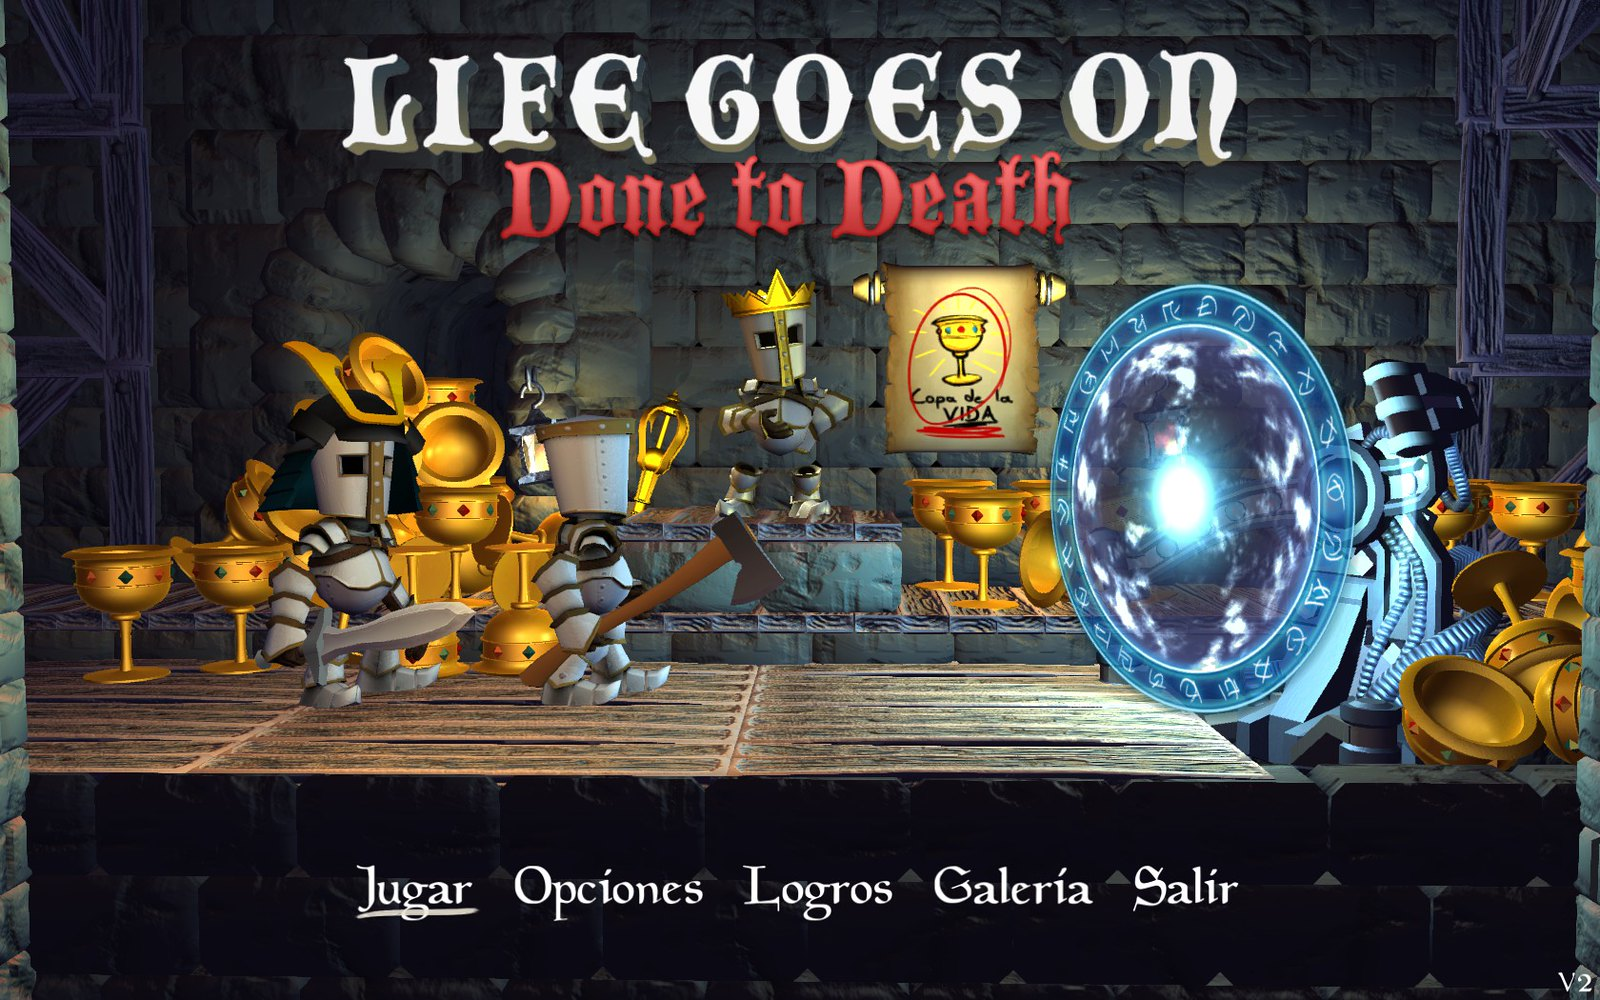 Life Goes On Done to Death 04